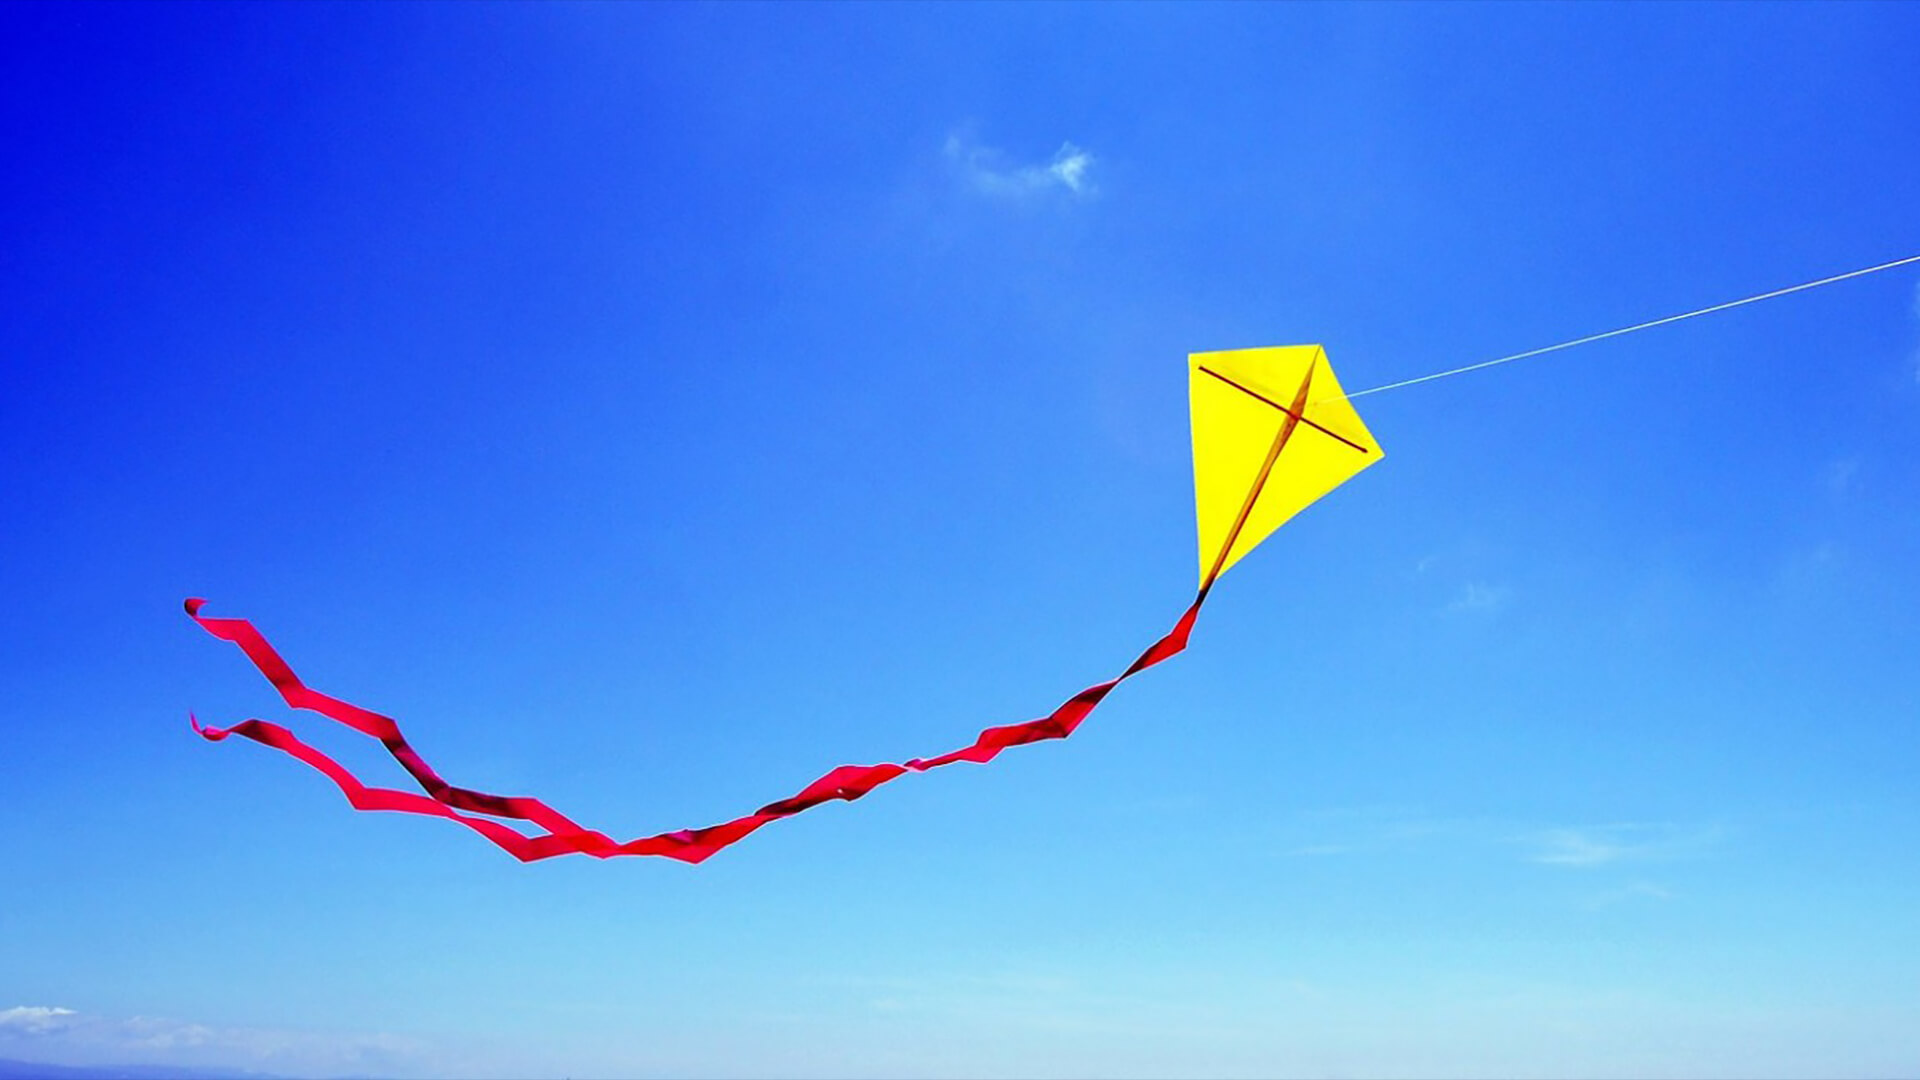 Lube N Go >> Let's Go Fly a Kite! at Steele Creek Park | Downtown ...